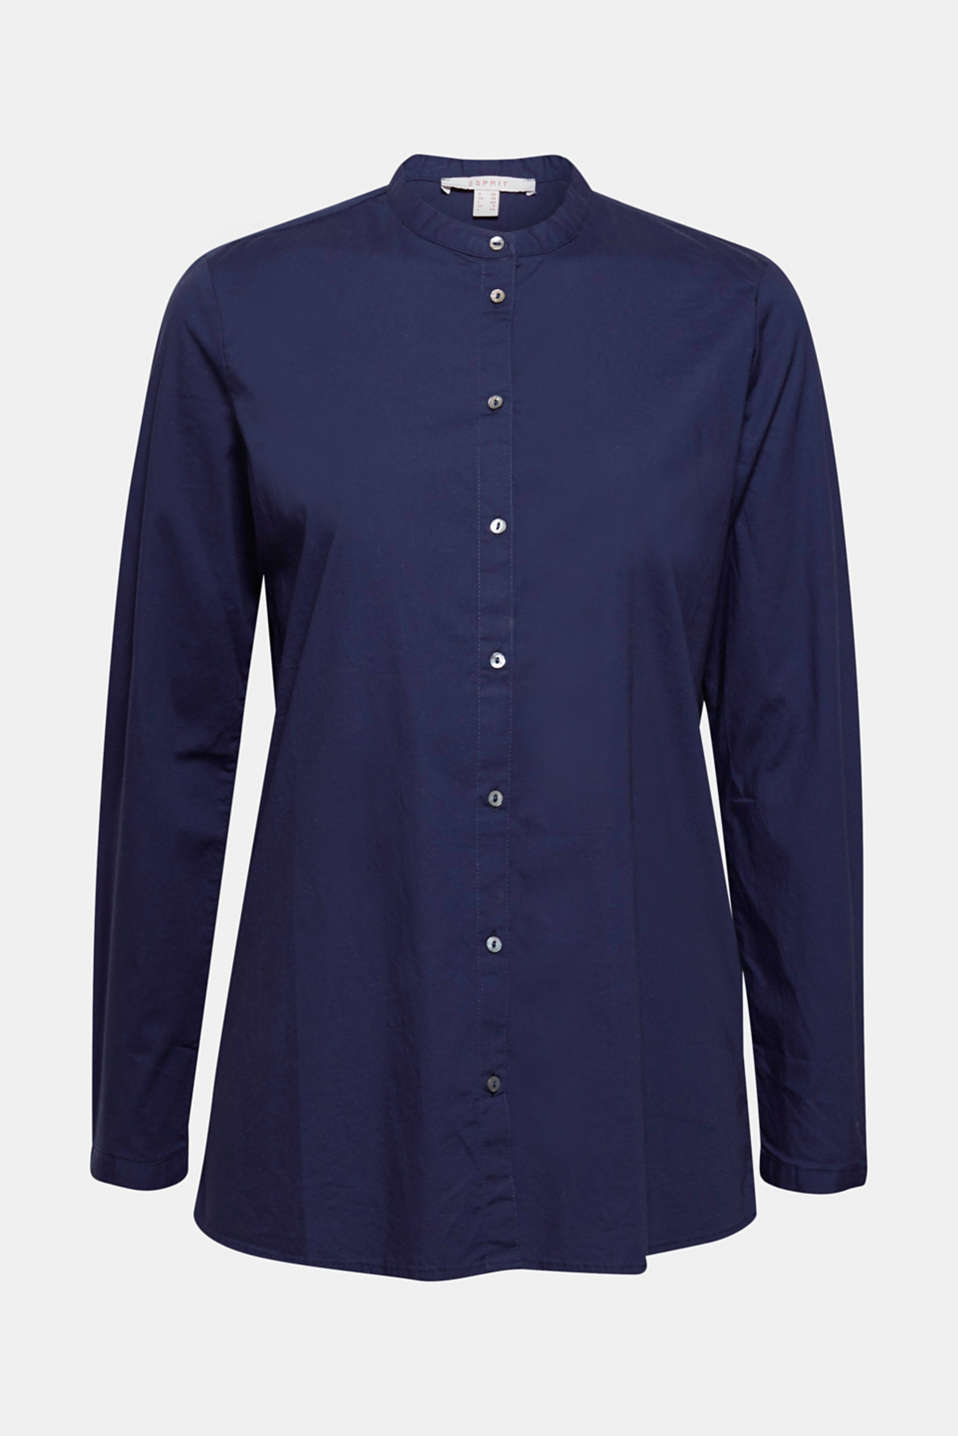 Clean, classic and modern, this straight-cut stretch cotton blouse features a small band collar for a unique look!